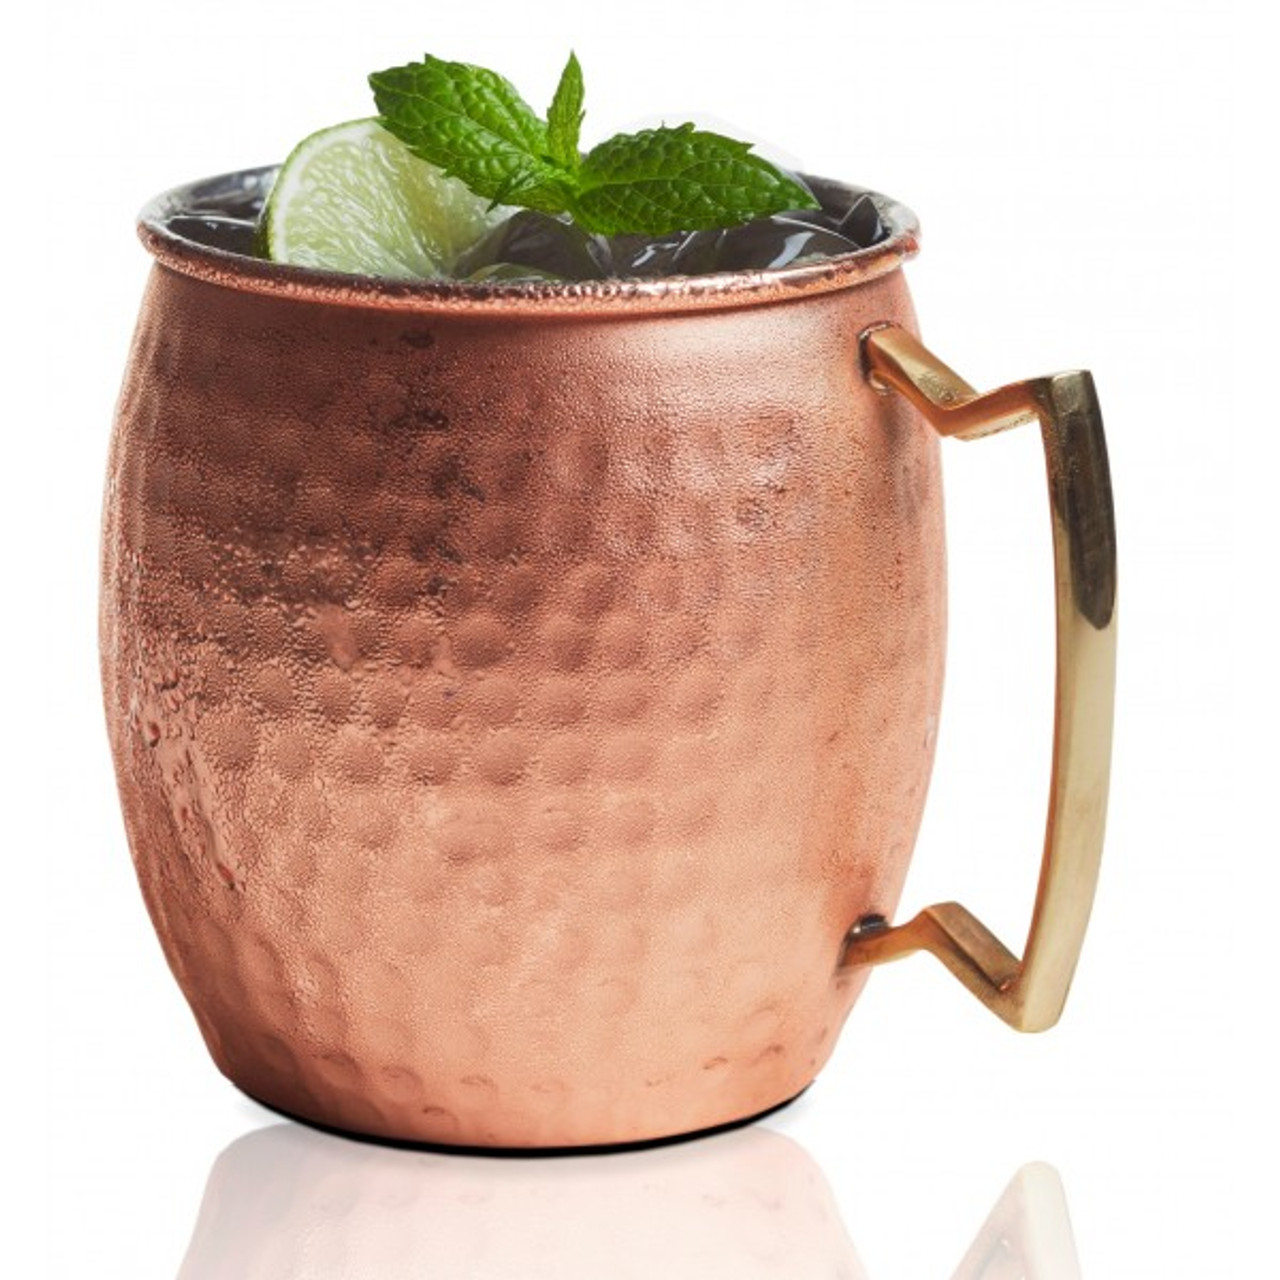 MOSCOW MULE MUG BELLY SHAPE - HAMMERED FINISH